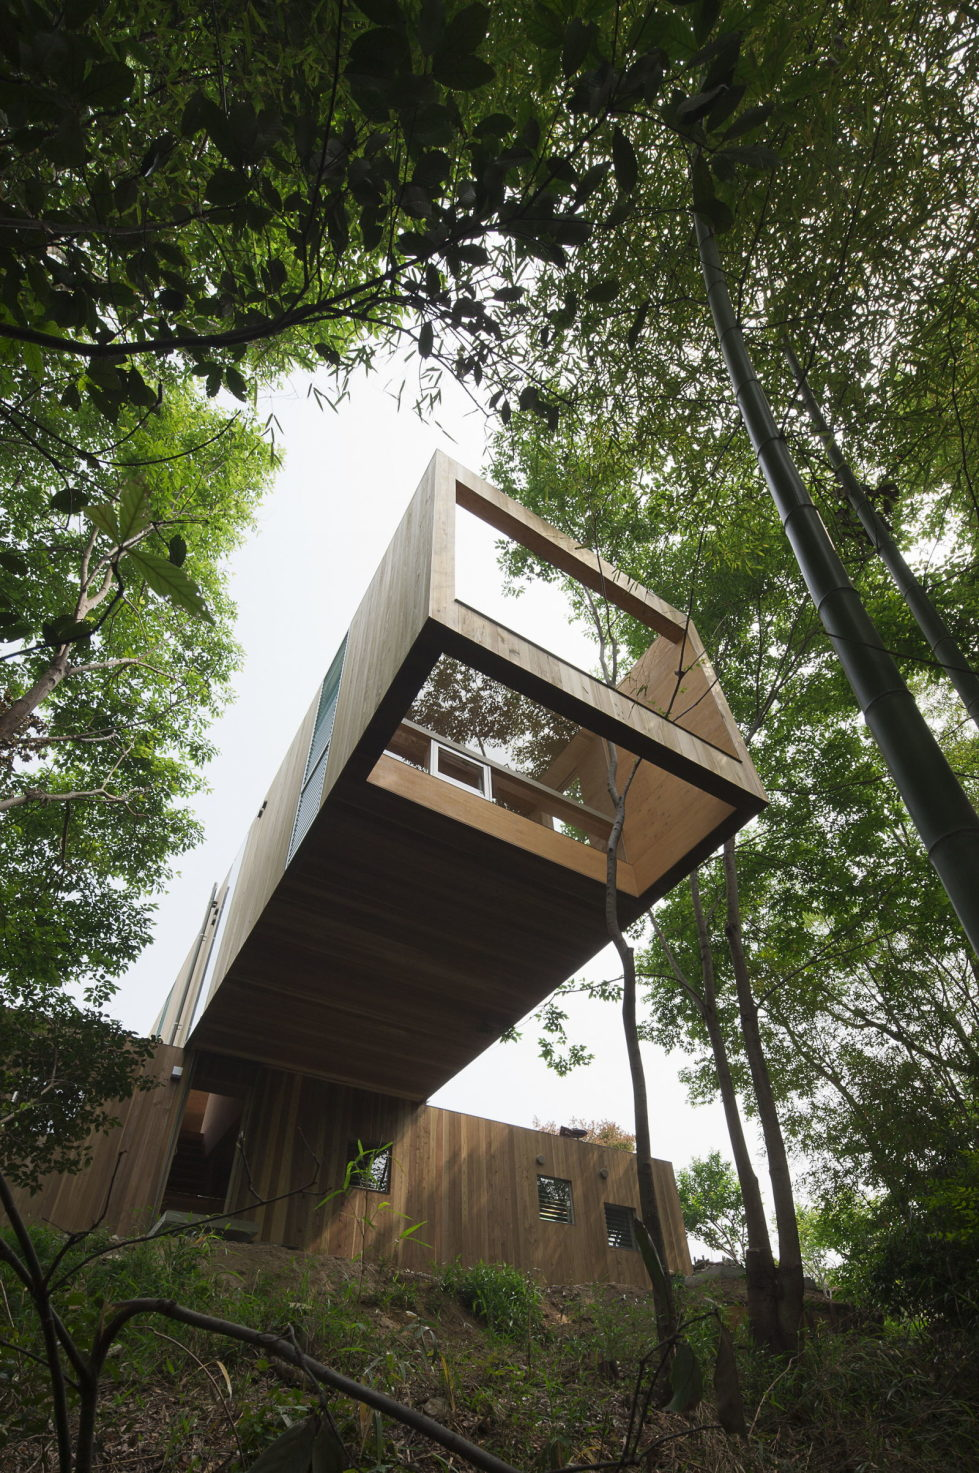 The pendulous over the forest house '+ node' from the UID Architects 4